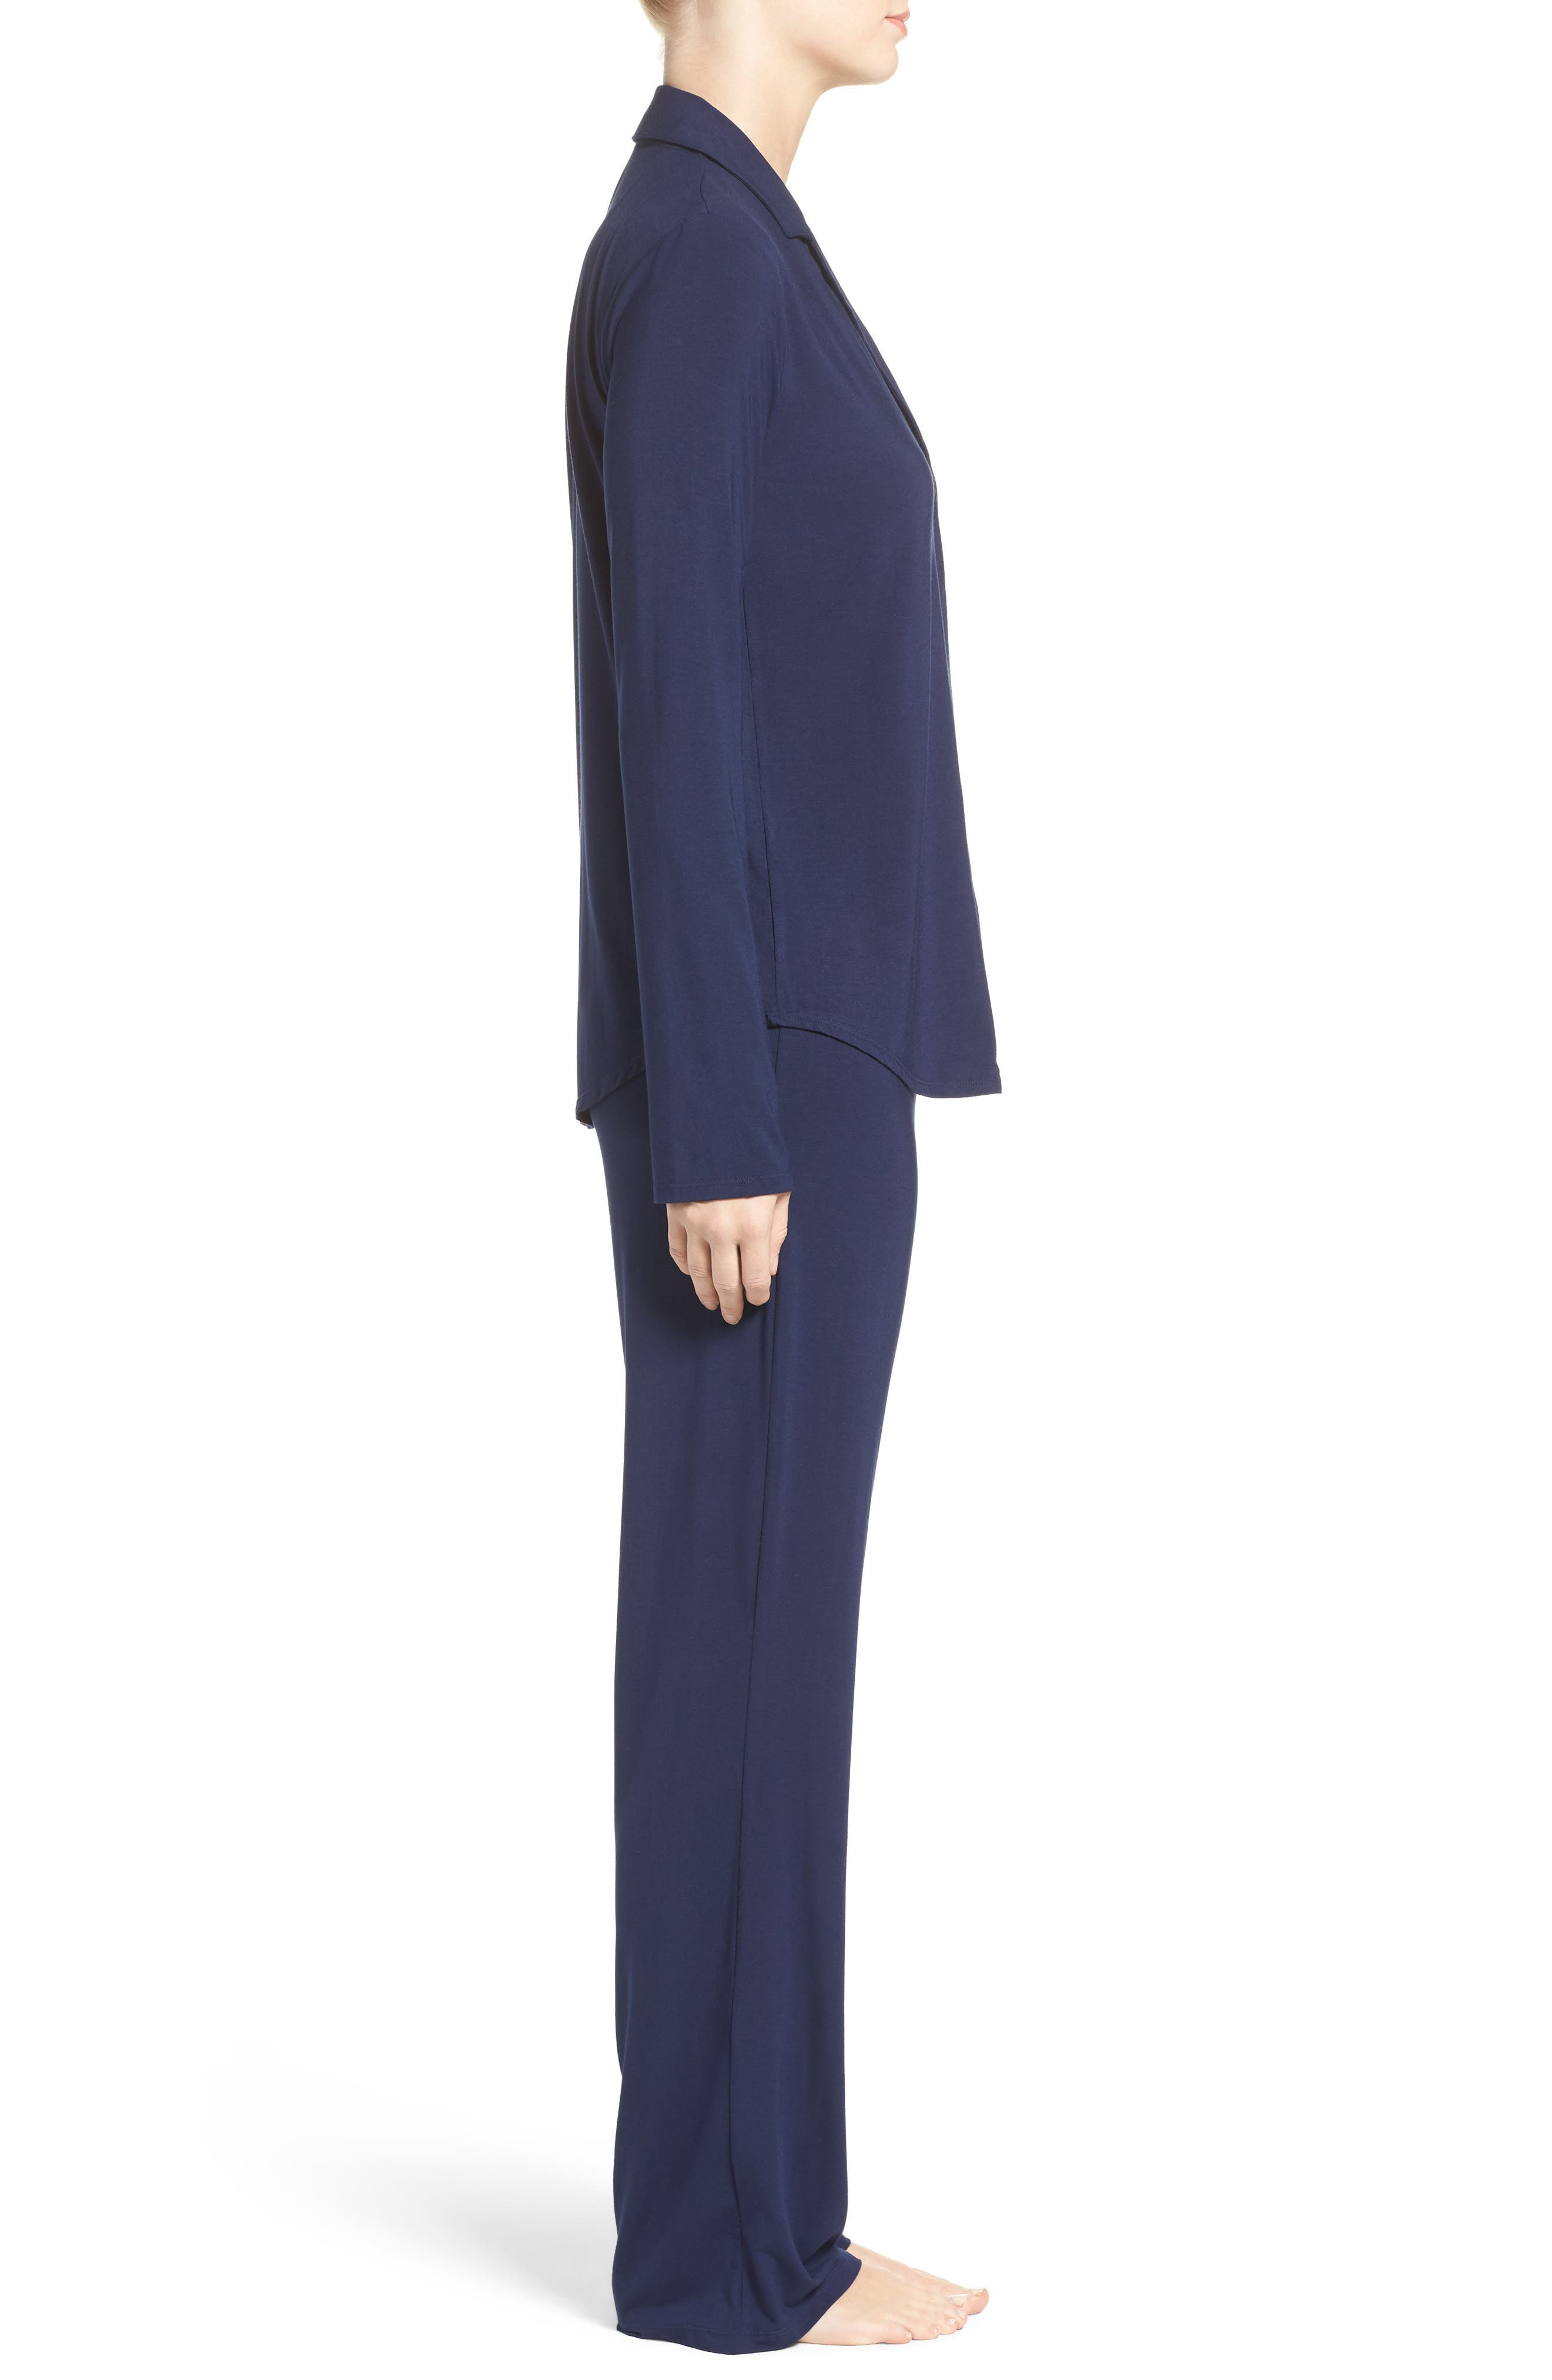 Stretch Modal Pajamas,                             Alternate thumbnail 3, color,                             PEACOAT BLUE